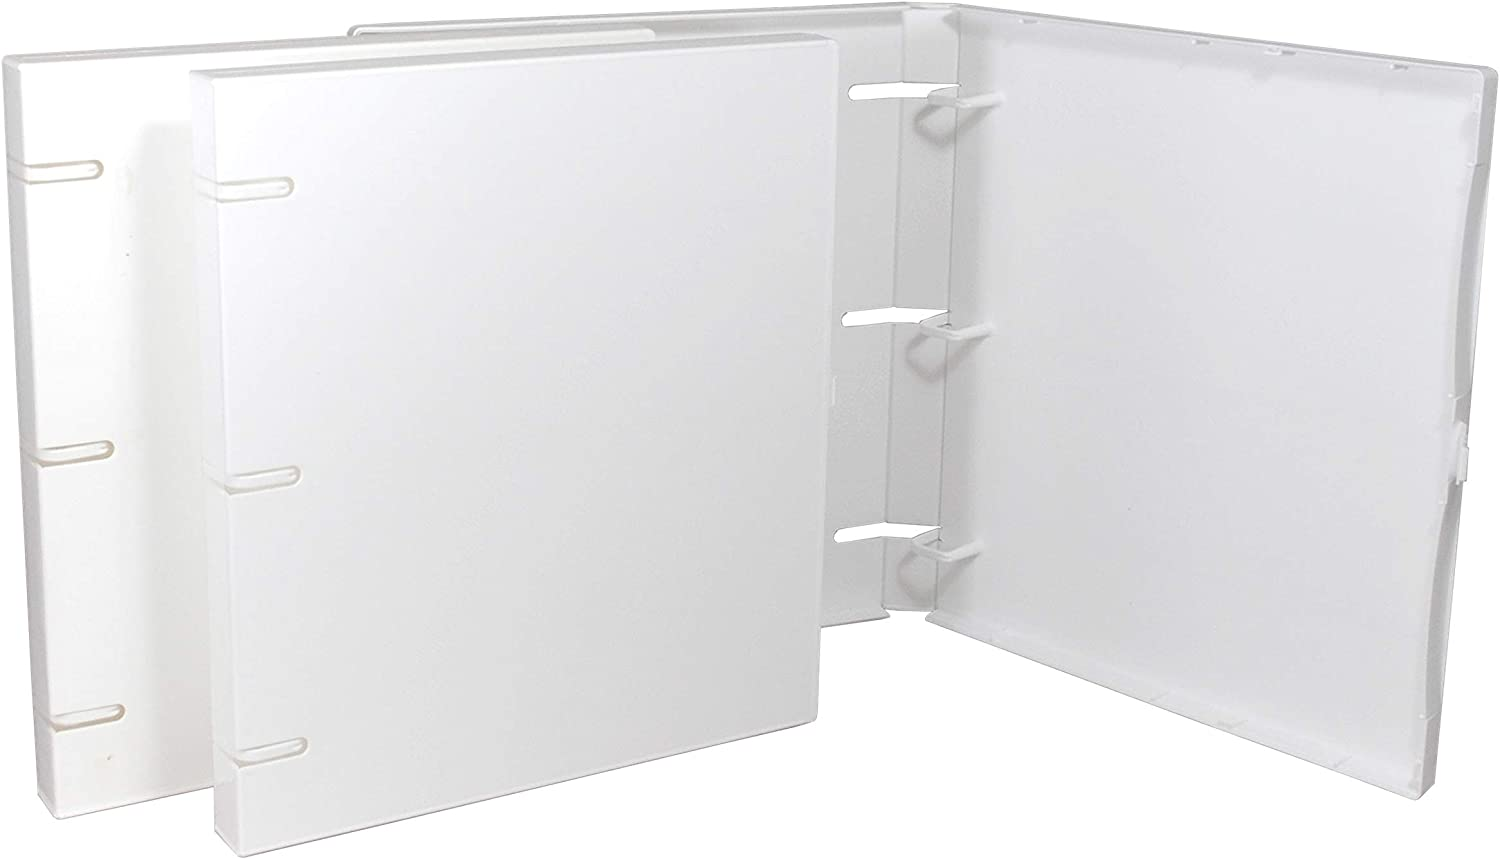 UniKeep 3 shopping Excellent Ring Binder - White Inch Case W 1.0 Spine